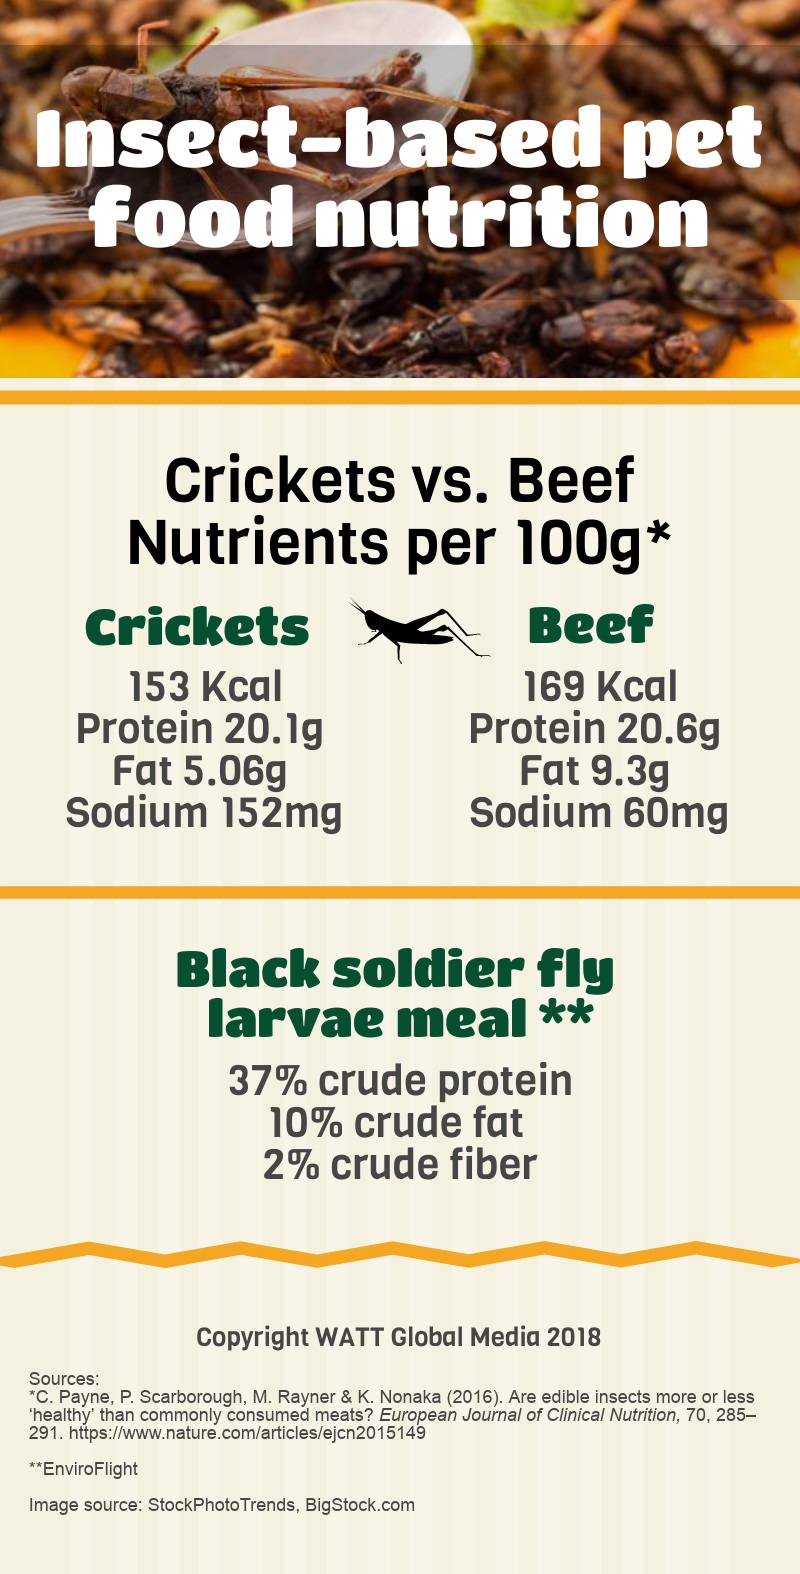 Insect_based_pet_food_nutrition_INFOGRAPHIC_v2.jpg